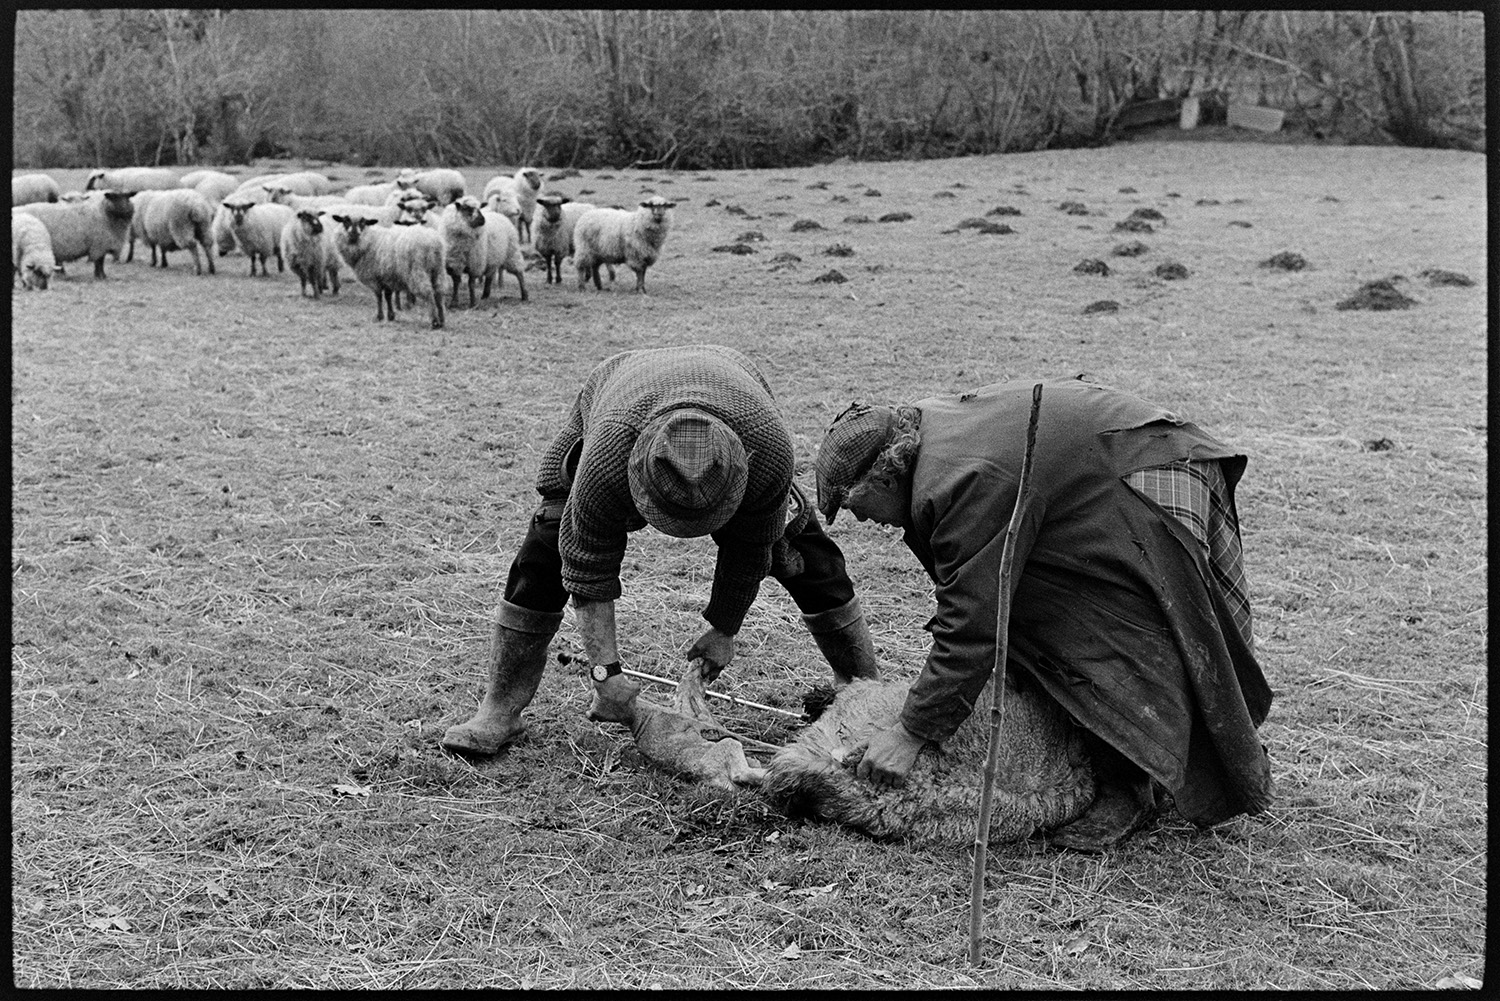 Two farmers delivering lamb, dog. <br /> [Archie Parkhouse and Ivor Brock helping a sheep to give birth to a lamb in a field at Addisford, Dolton. Sheep are watching in the background.]